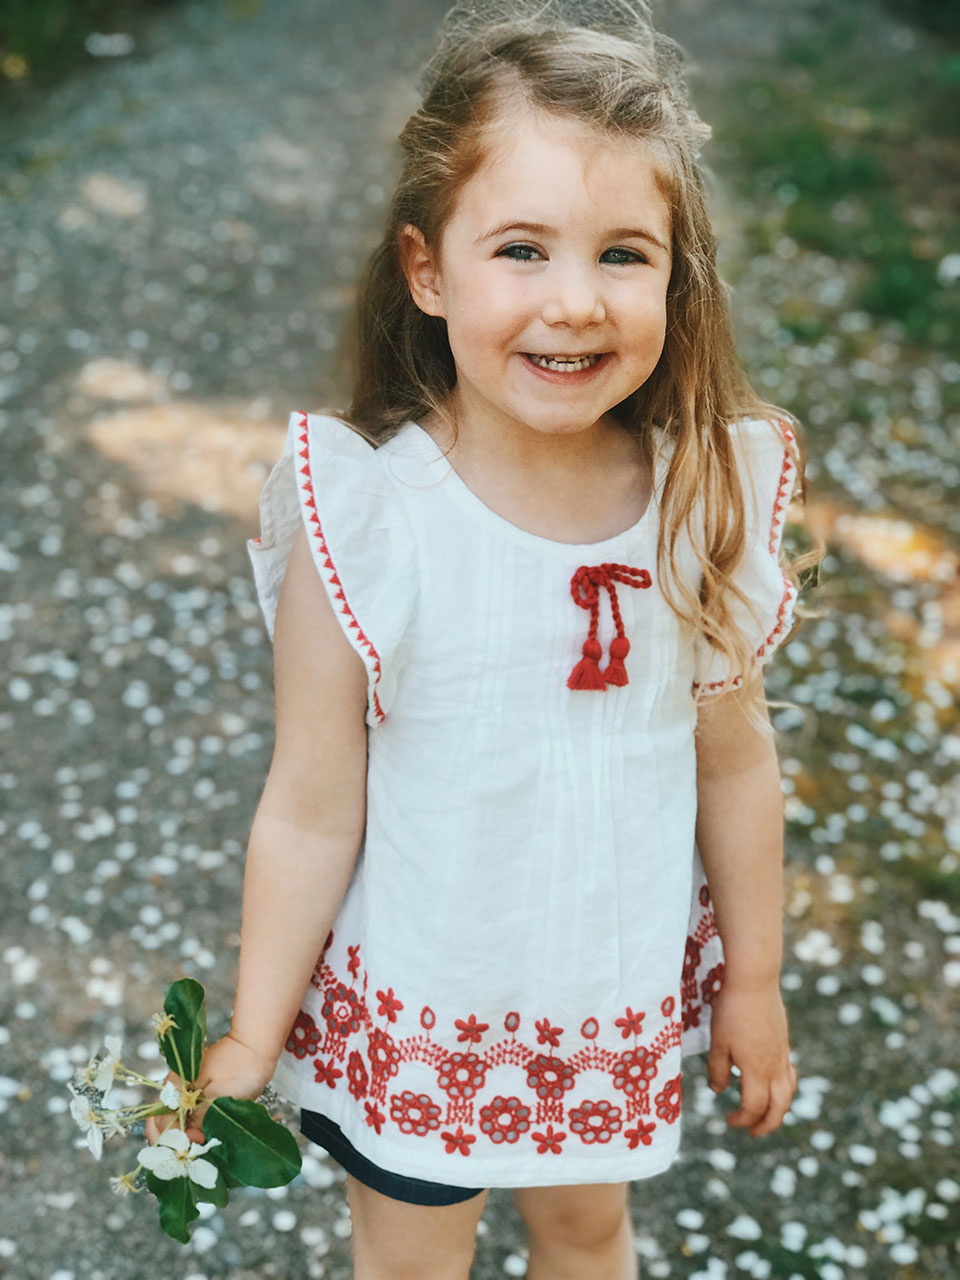 My secret to shopping for the cutest kids' clothes